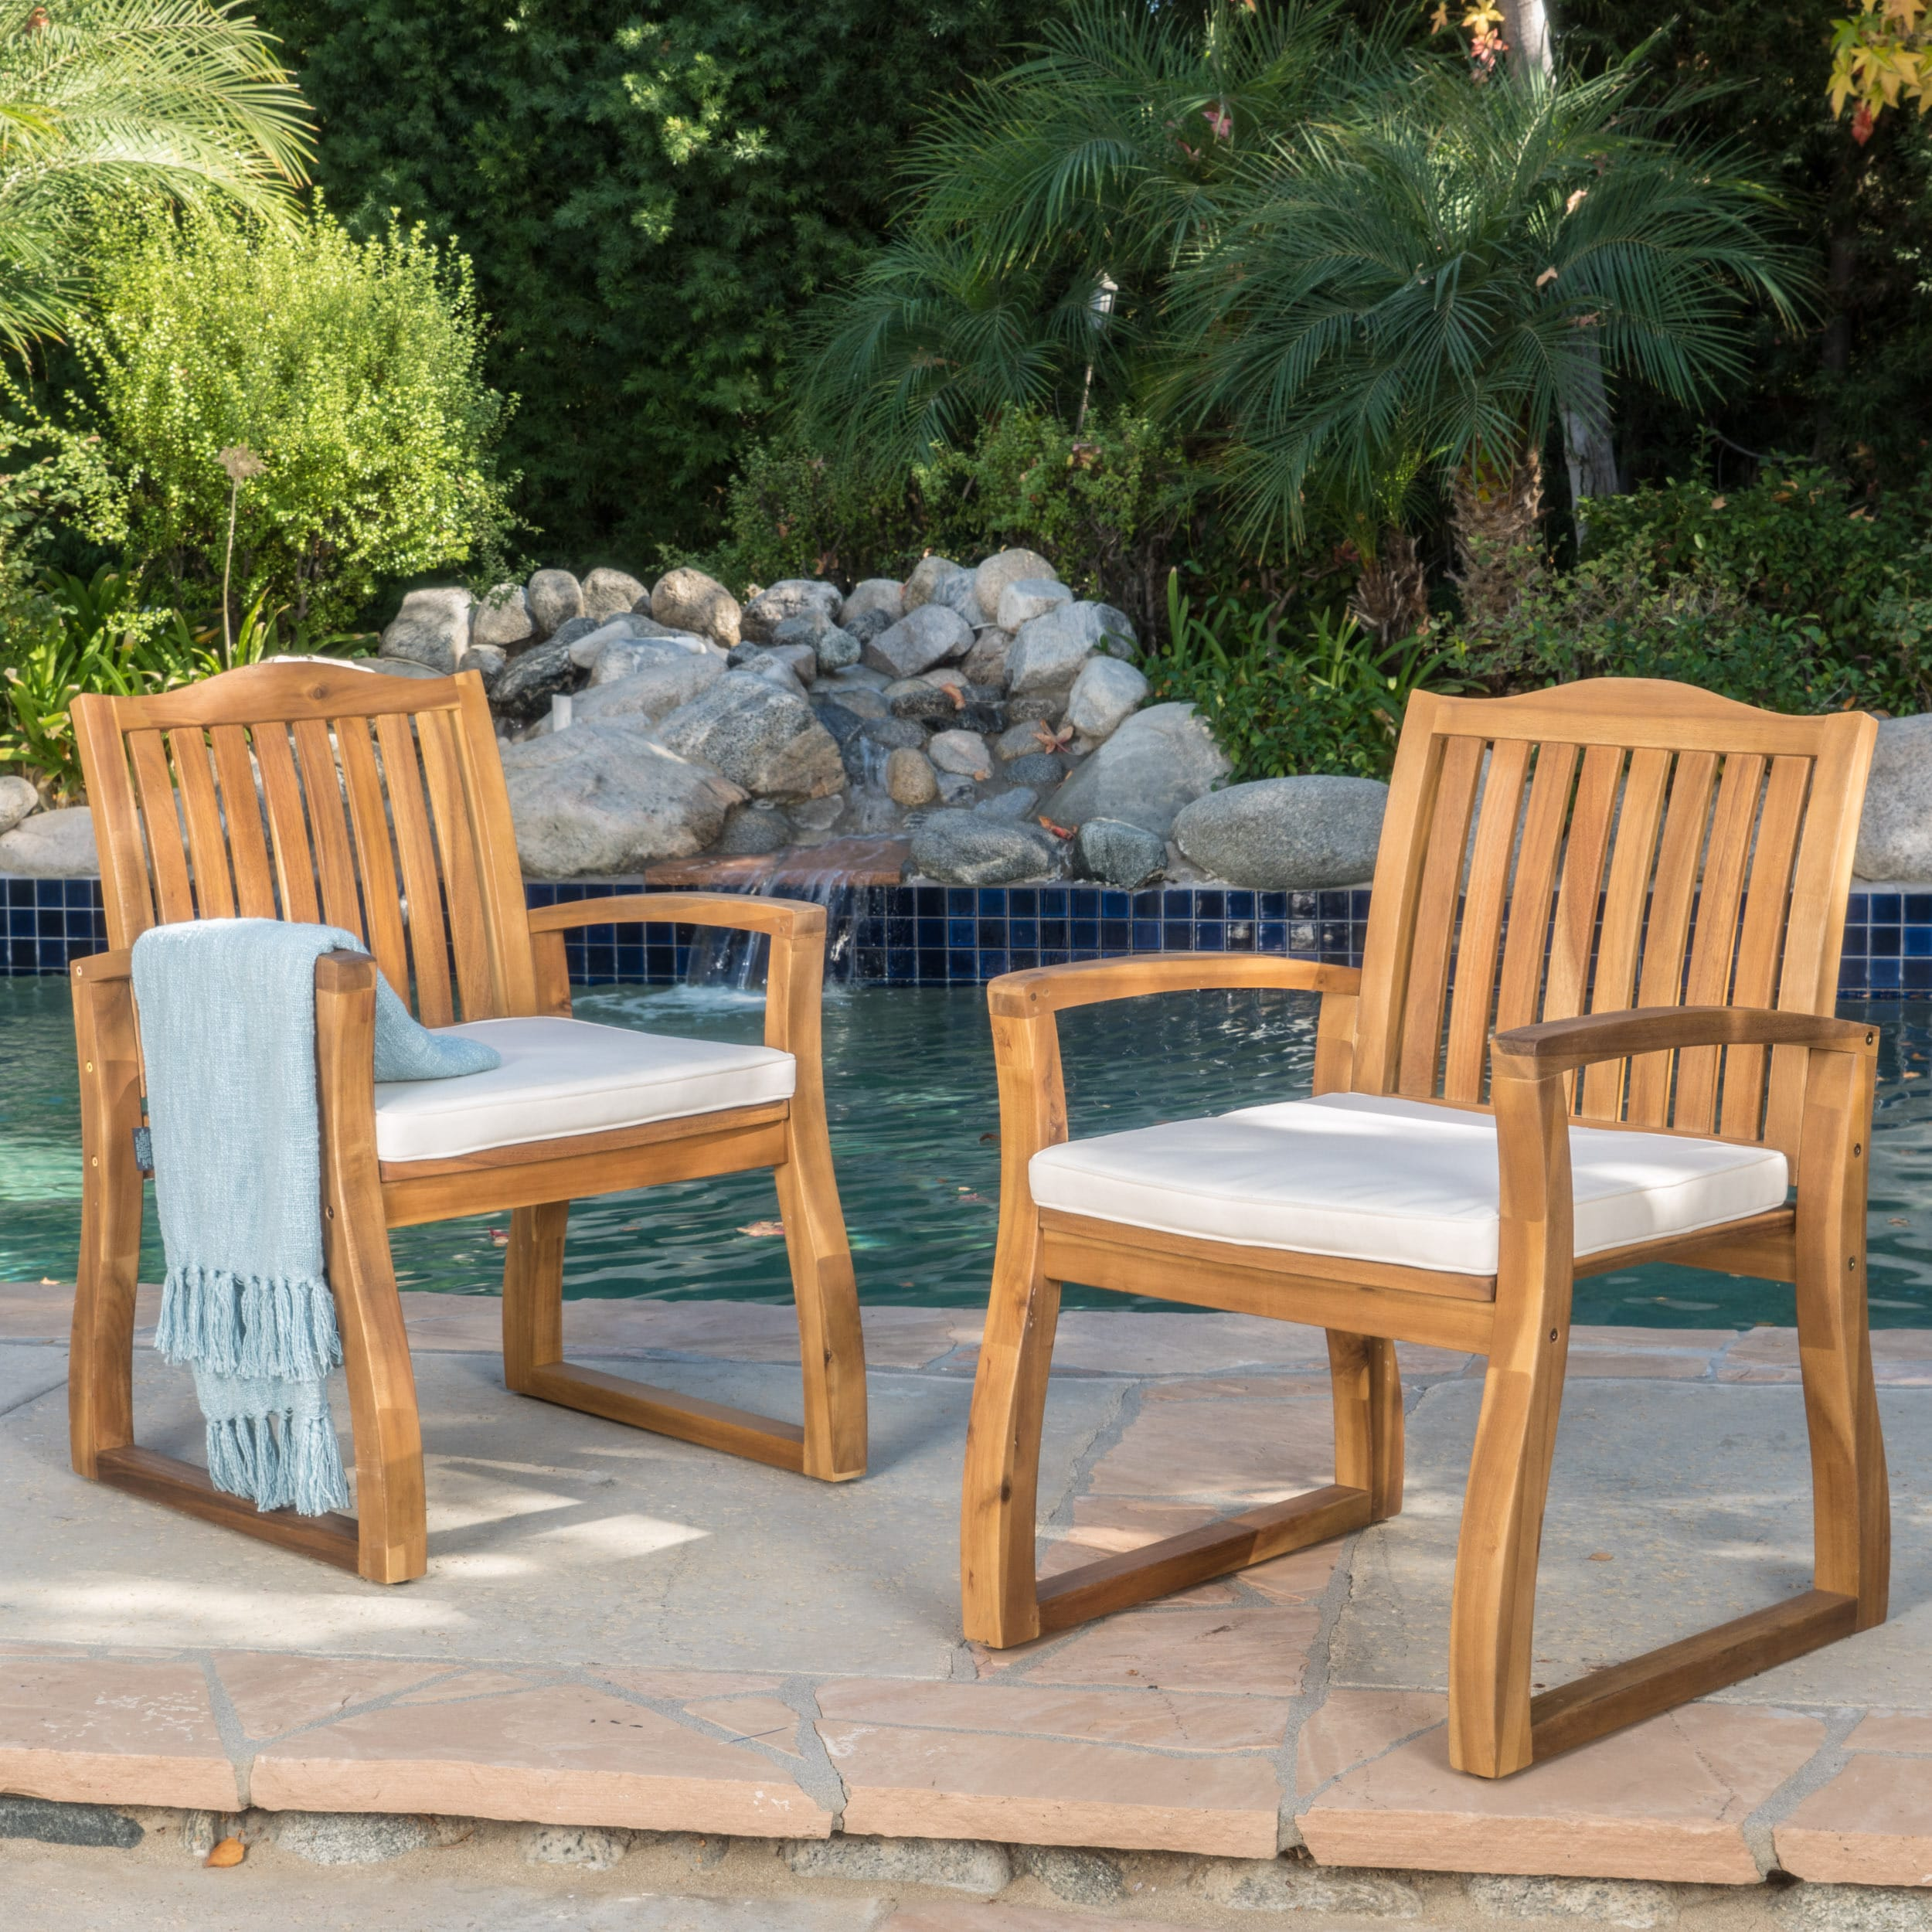 Awesome Details About Della Outdoor Acacia Wood Dining Chairs Set Of 2 By Brown Lamtechconsult Wood Chair Design Ideas Lamtechconsultcom